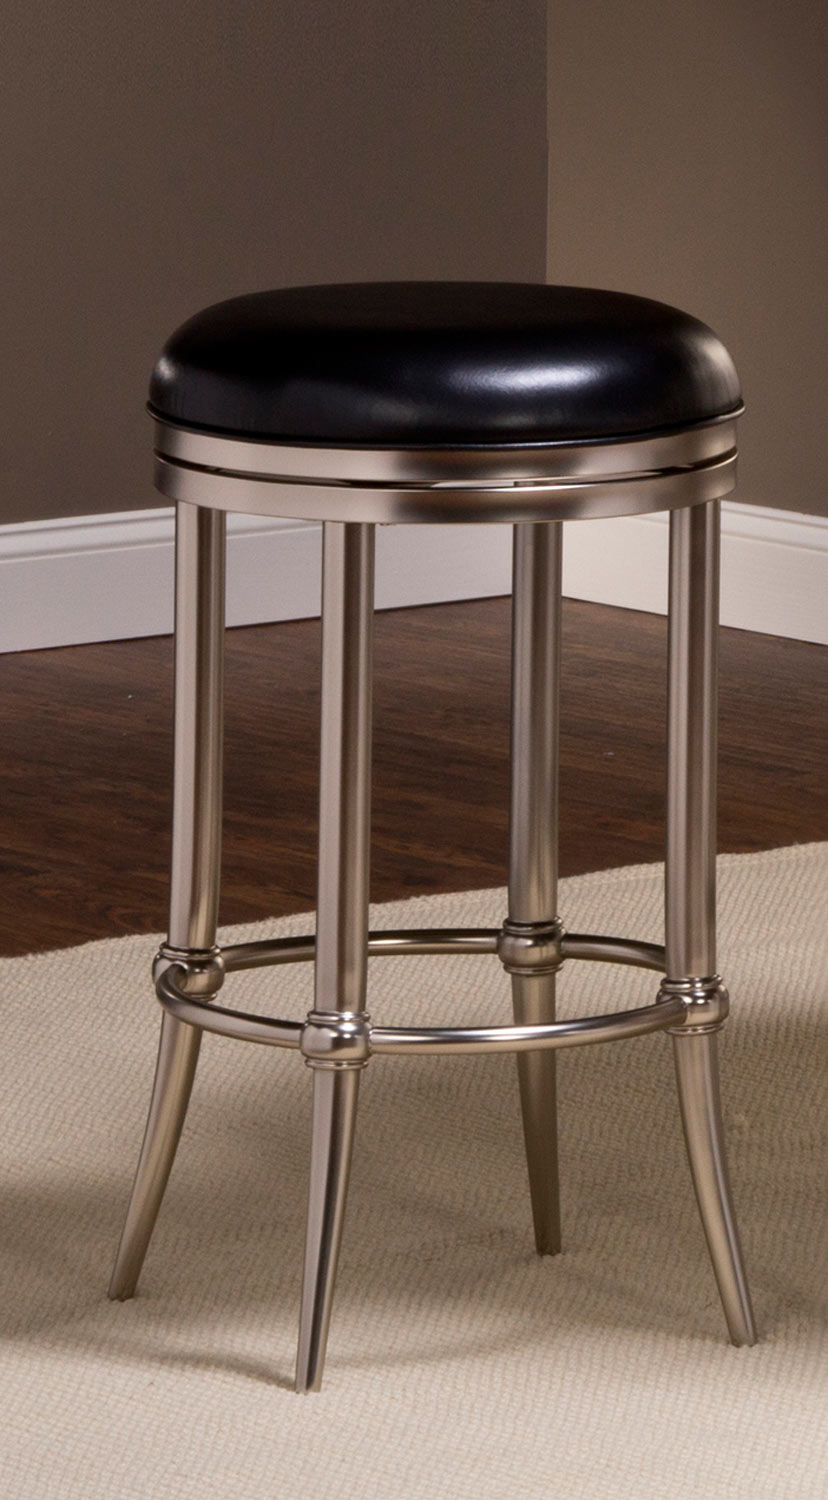 Hillsdale Cadman Backless Bar Stool Black Vinyl Dull